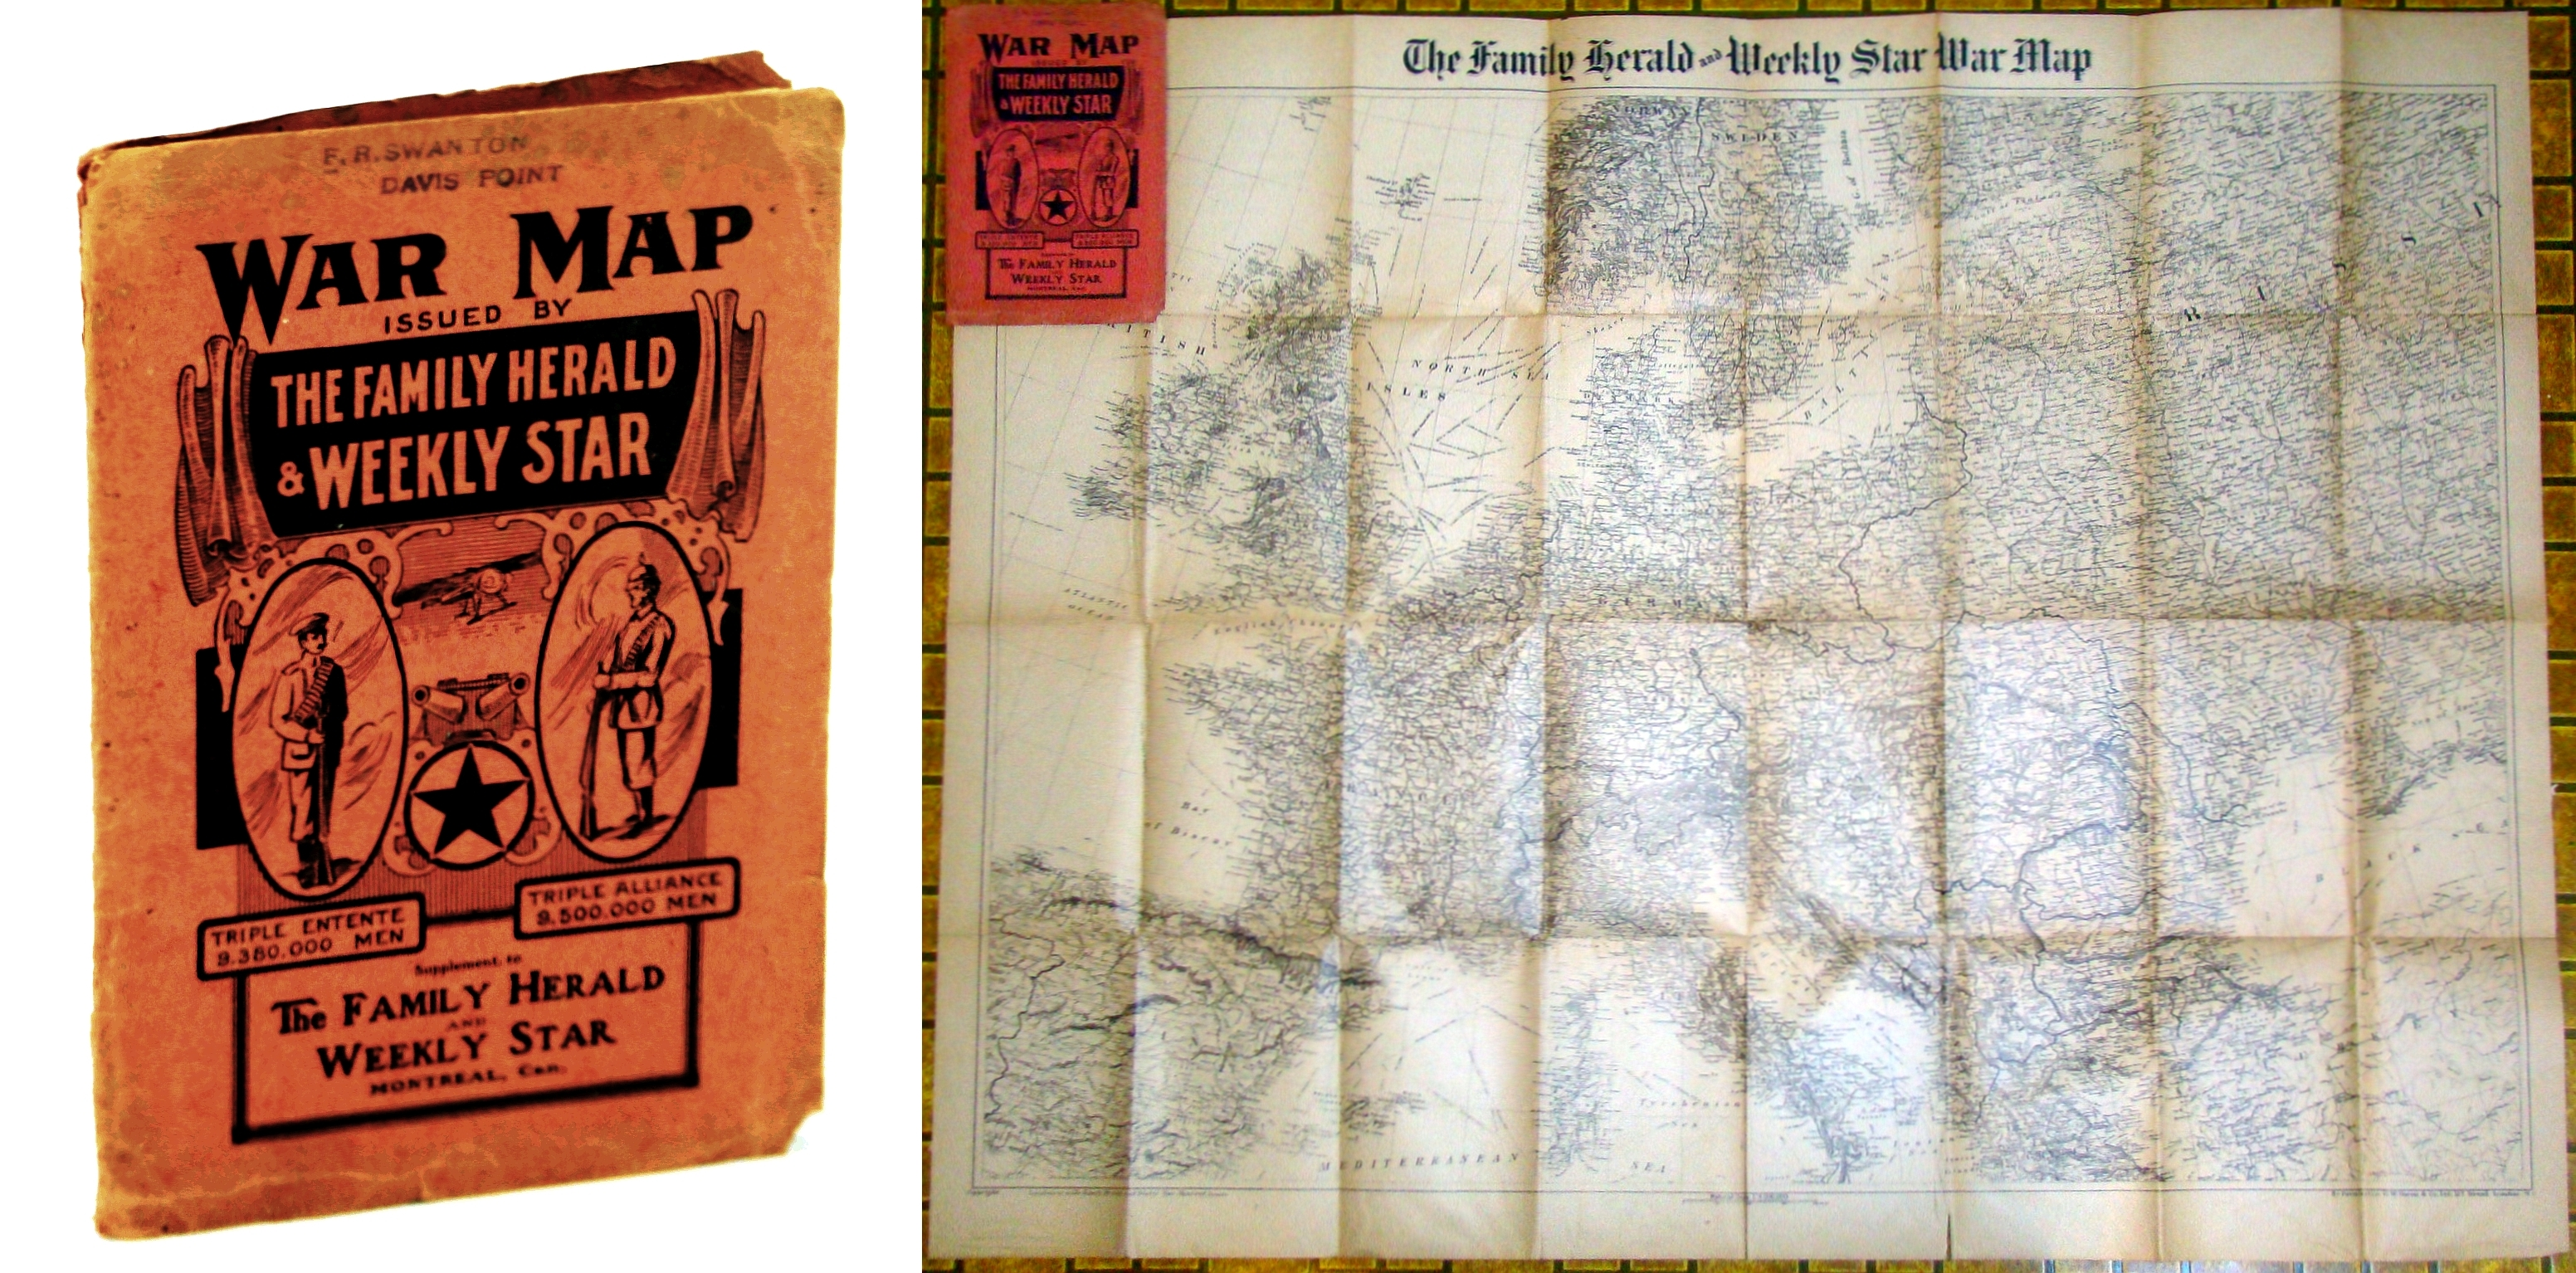 [WWI] War Map Issued By The Family Herald & Weekly Star